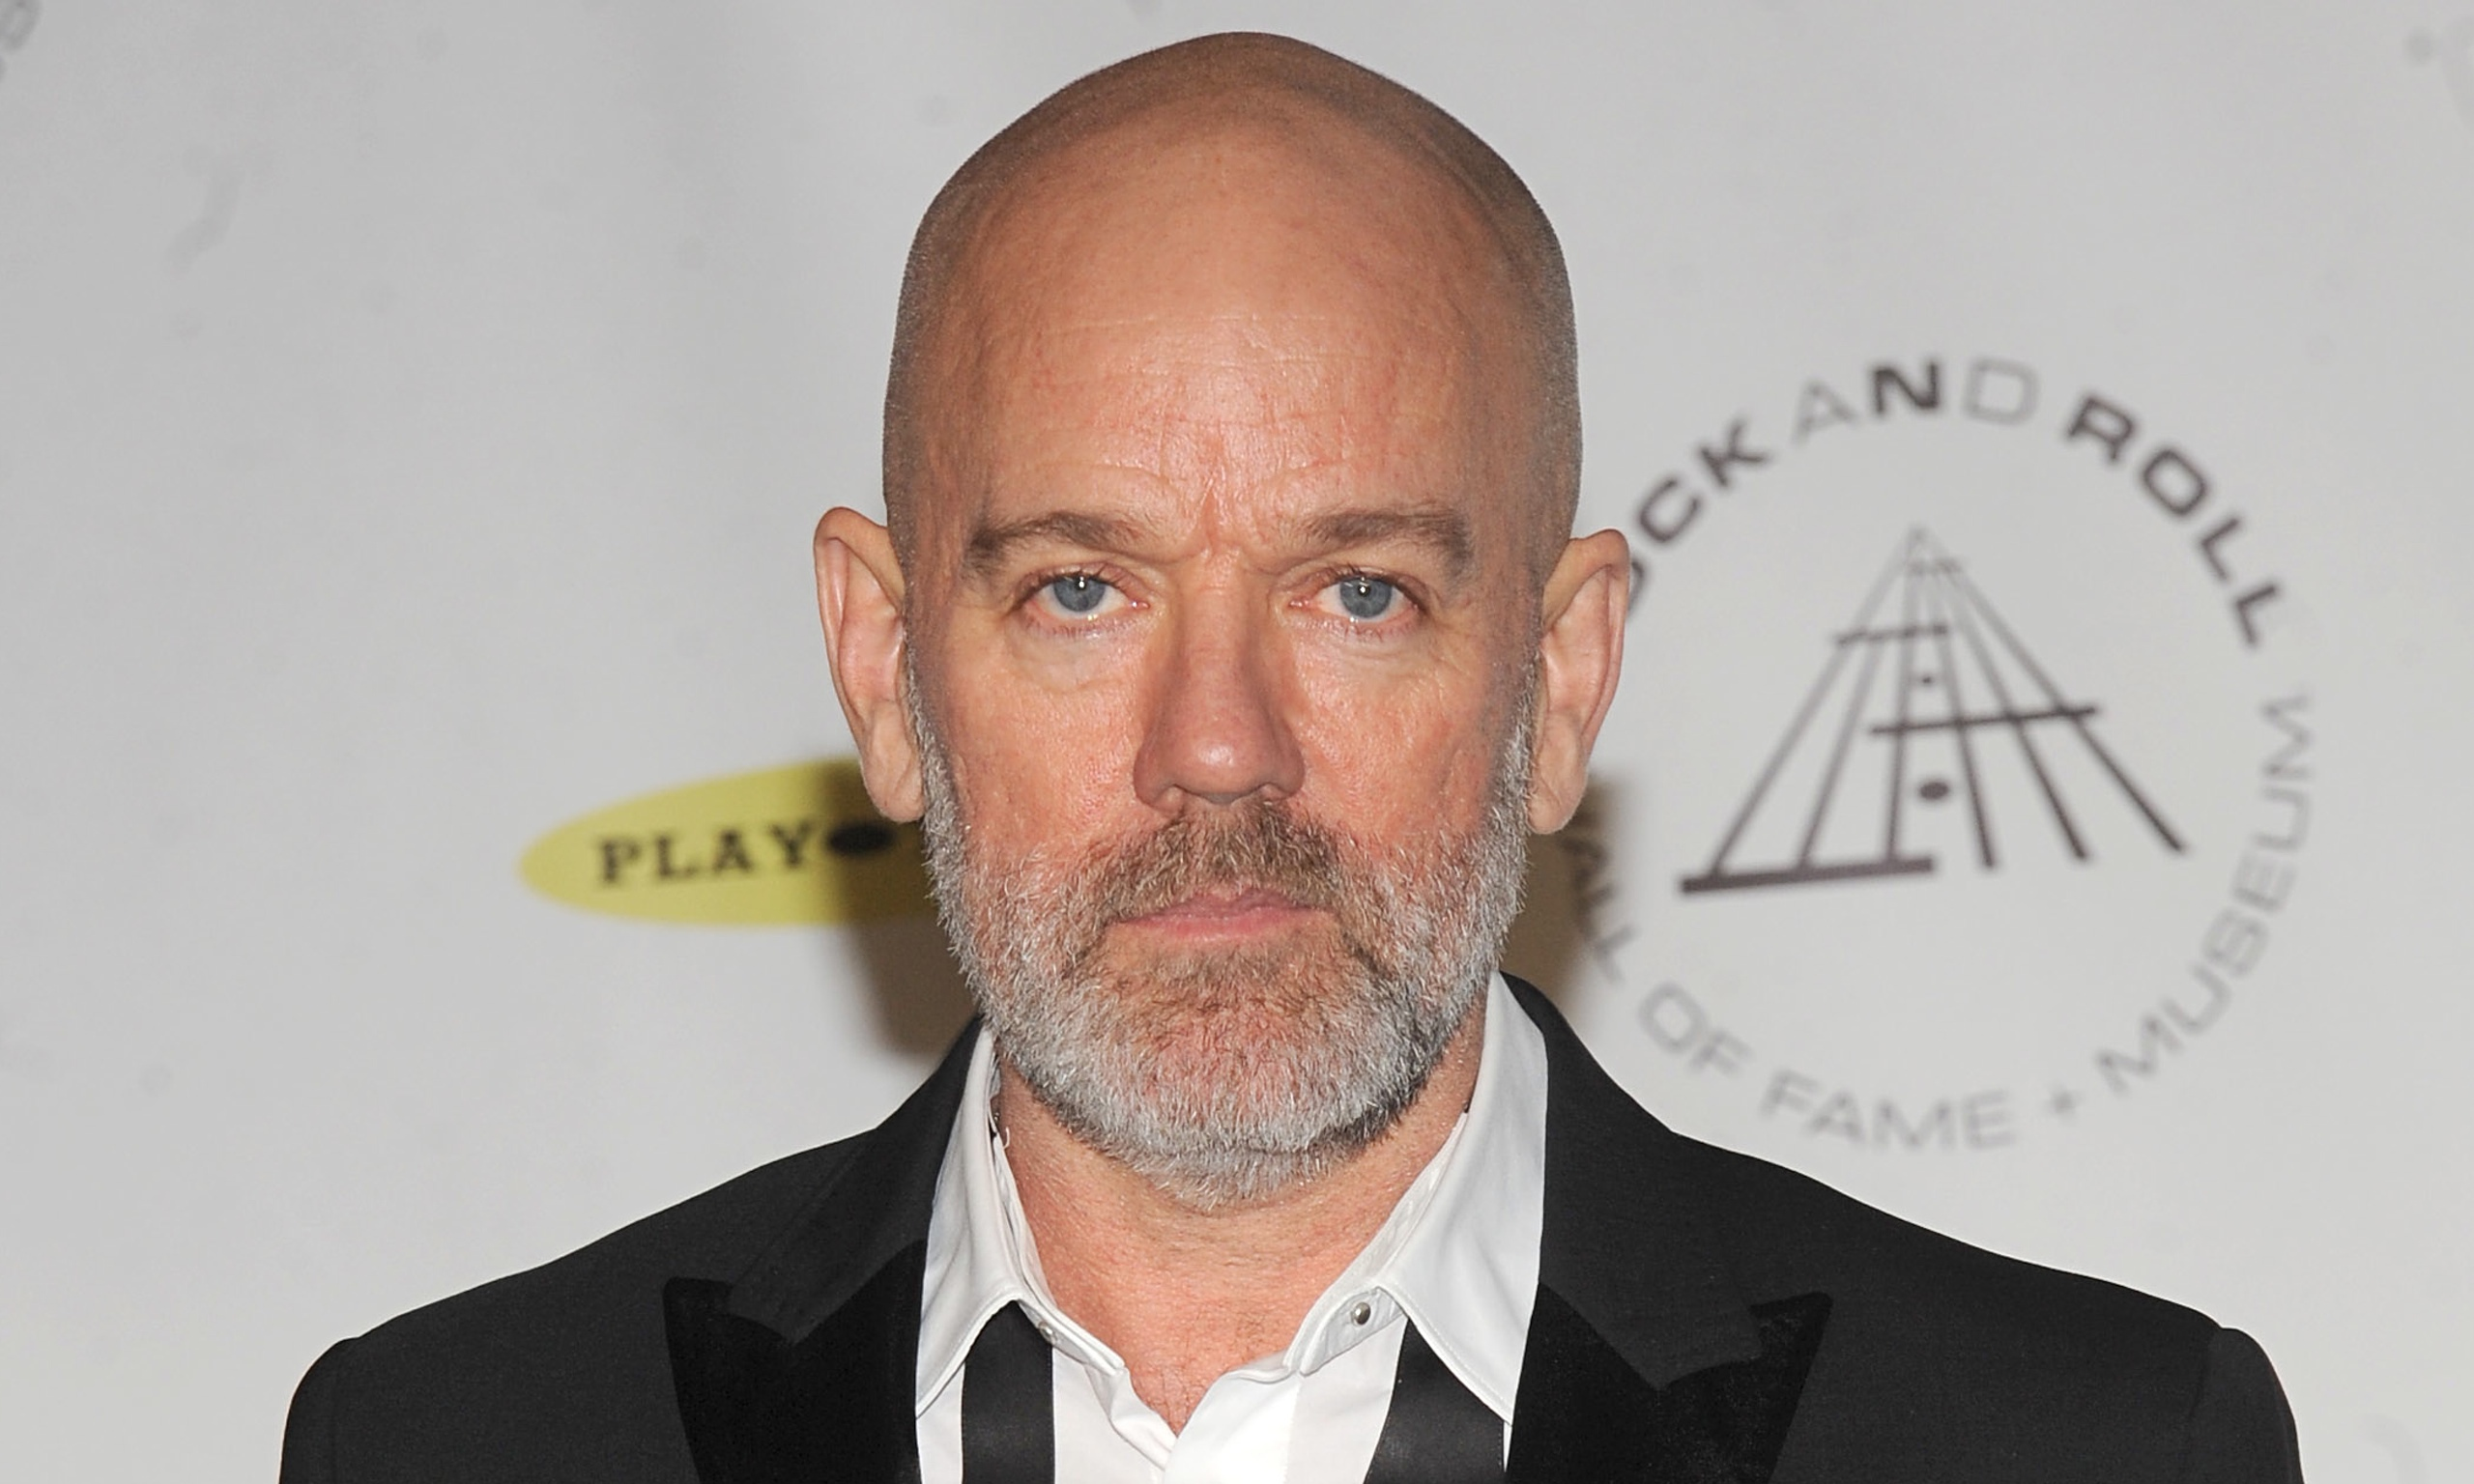 how tall is michael stipe